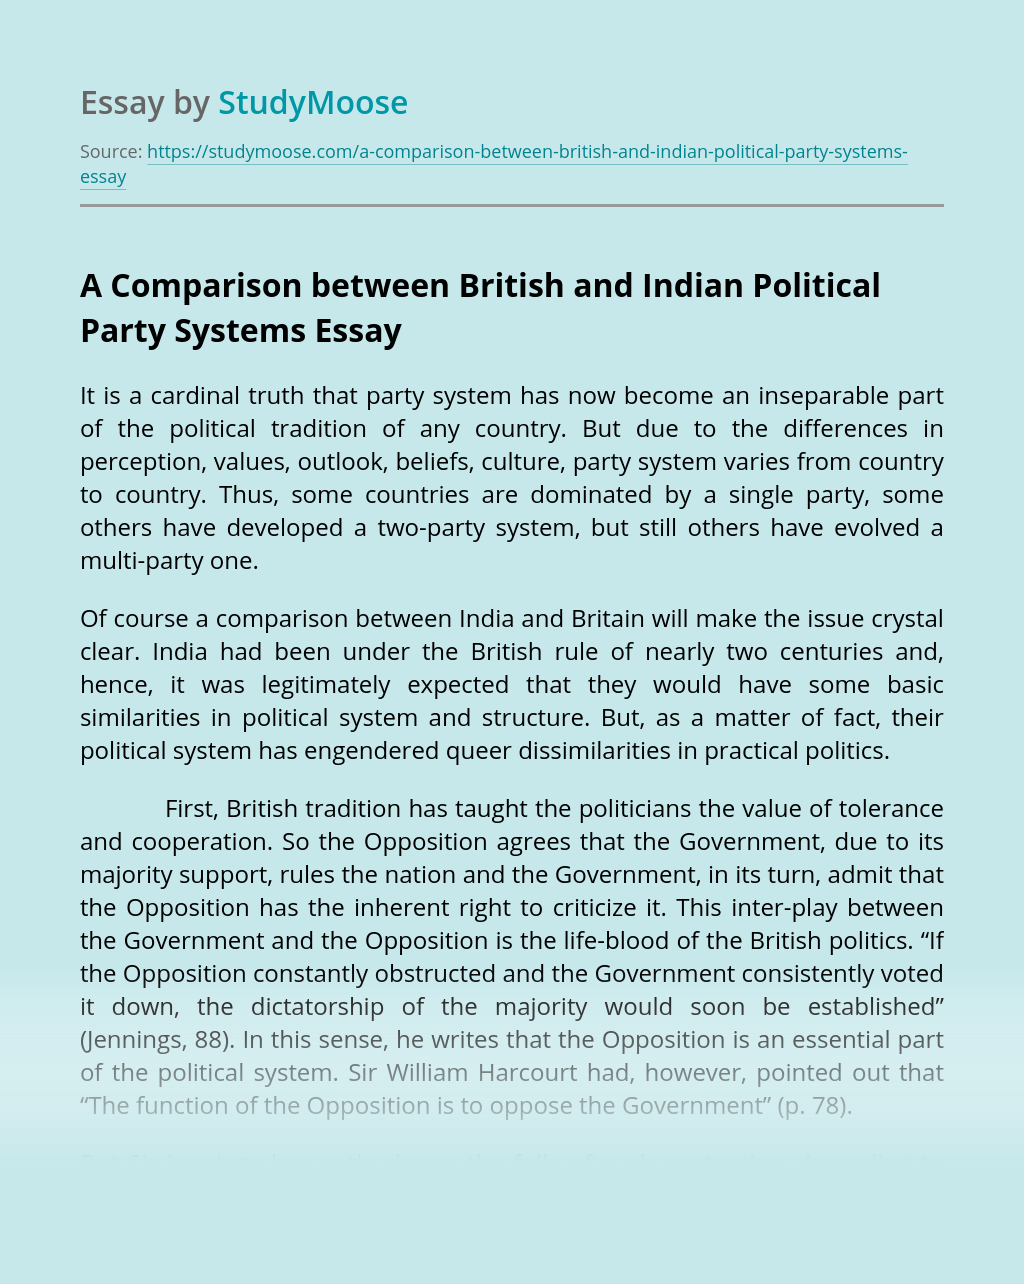 A Comparison between British and Indian Political Party Systems